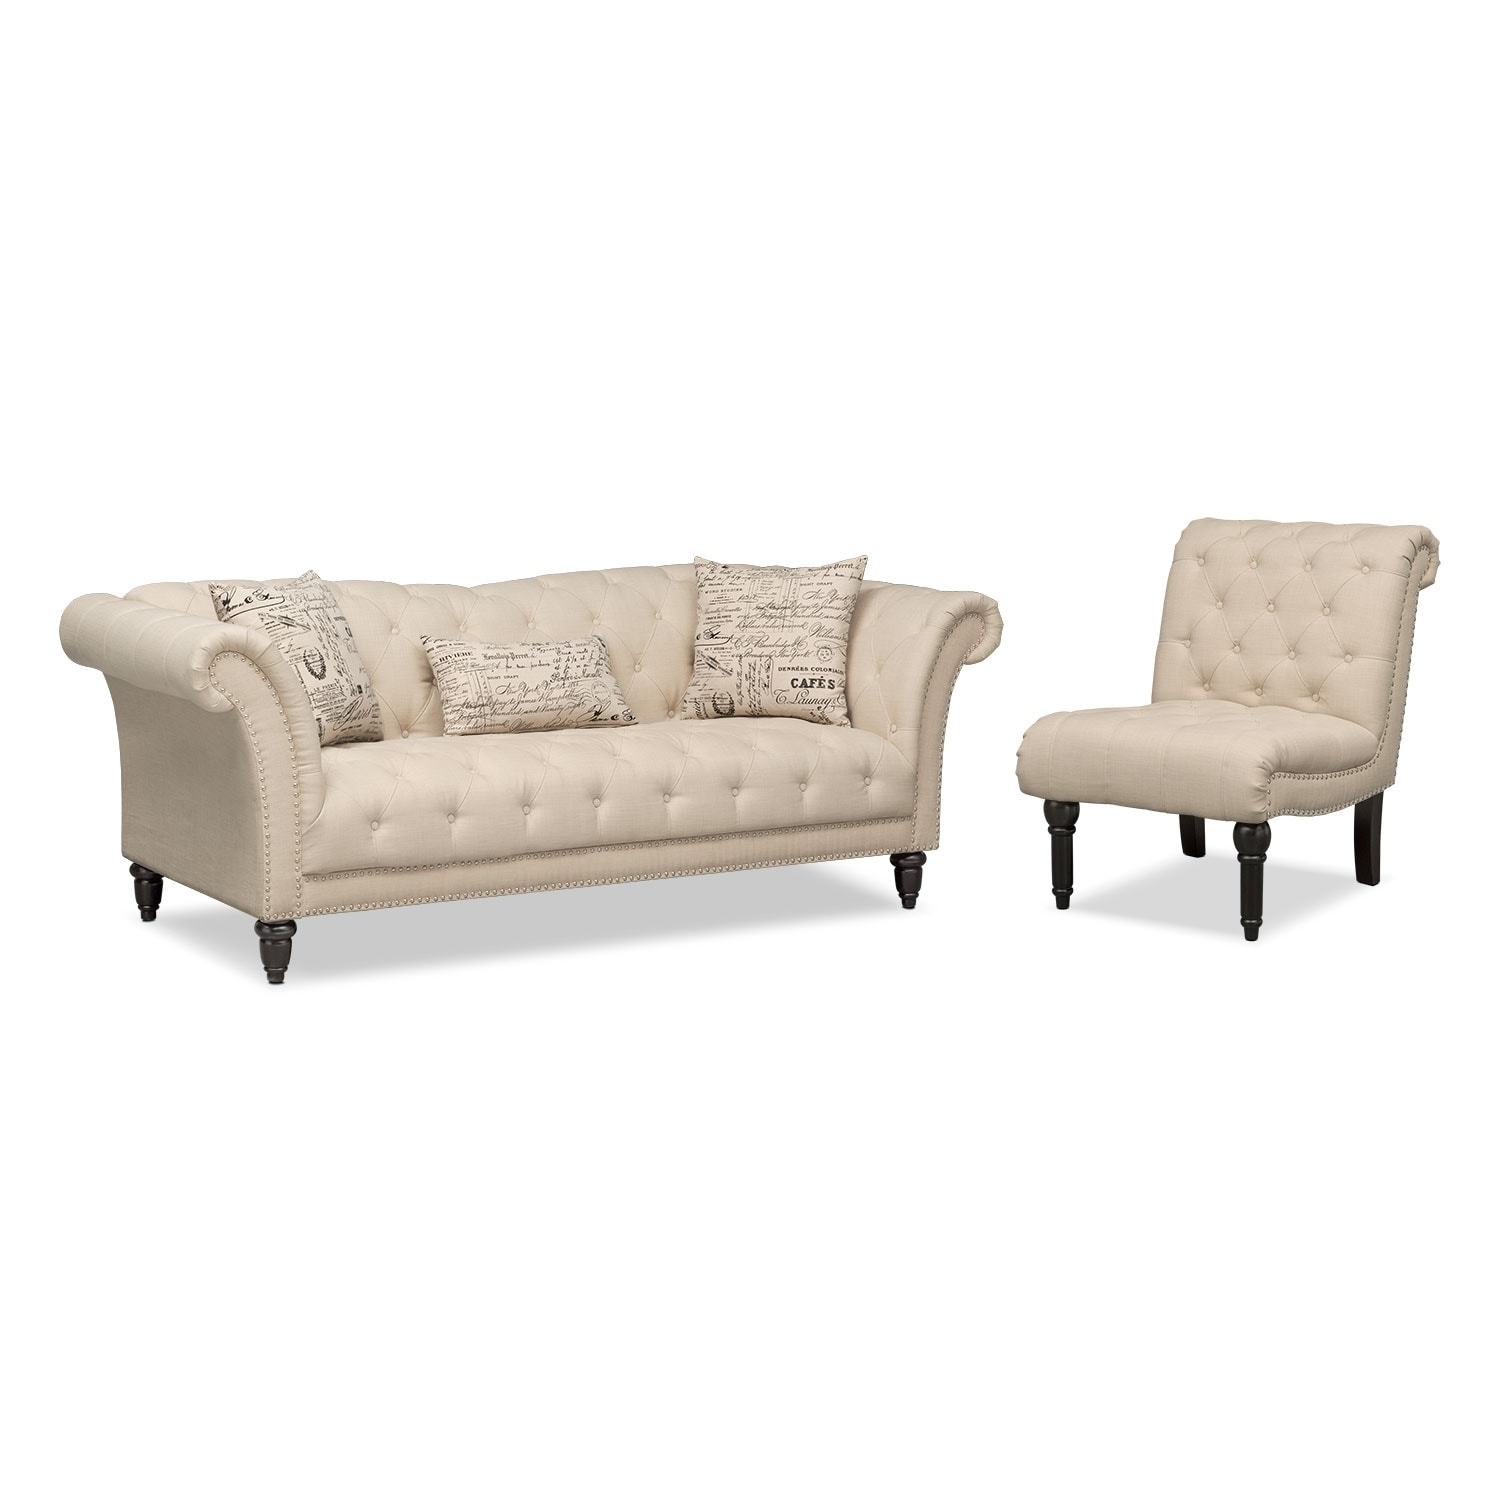 Living Room Furniture - Marisol Sofa and Chair Set